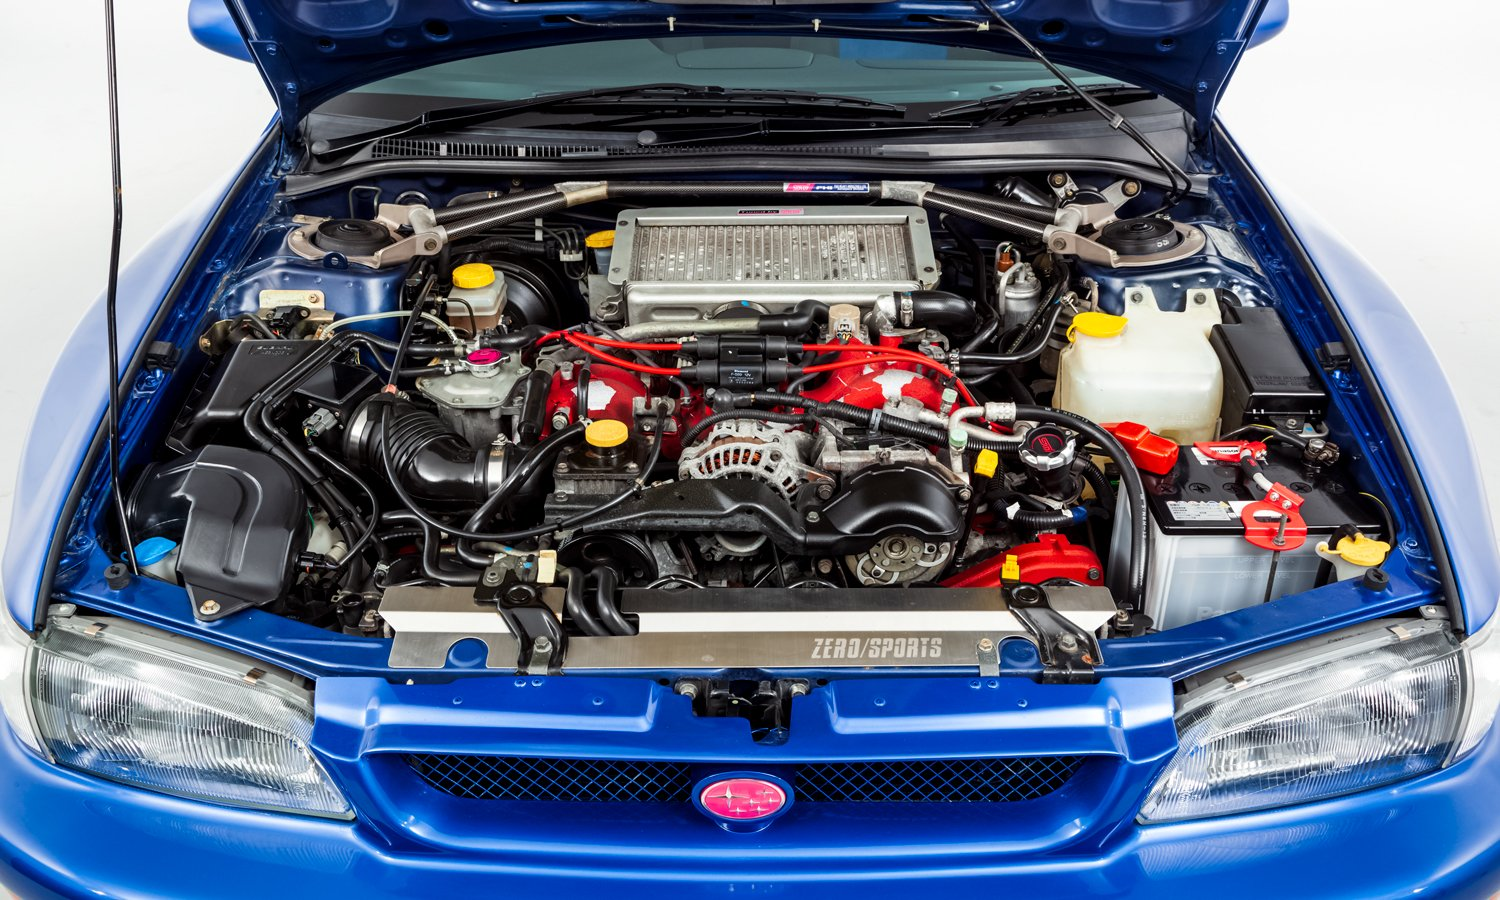 Subaru-Impreza-22B-STi-1998-for-sale-17